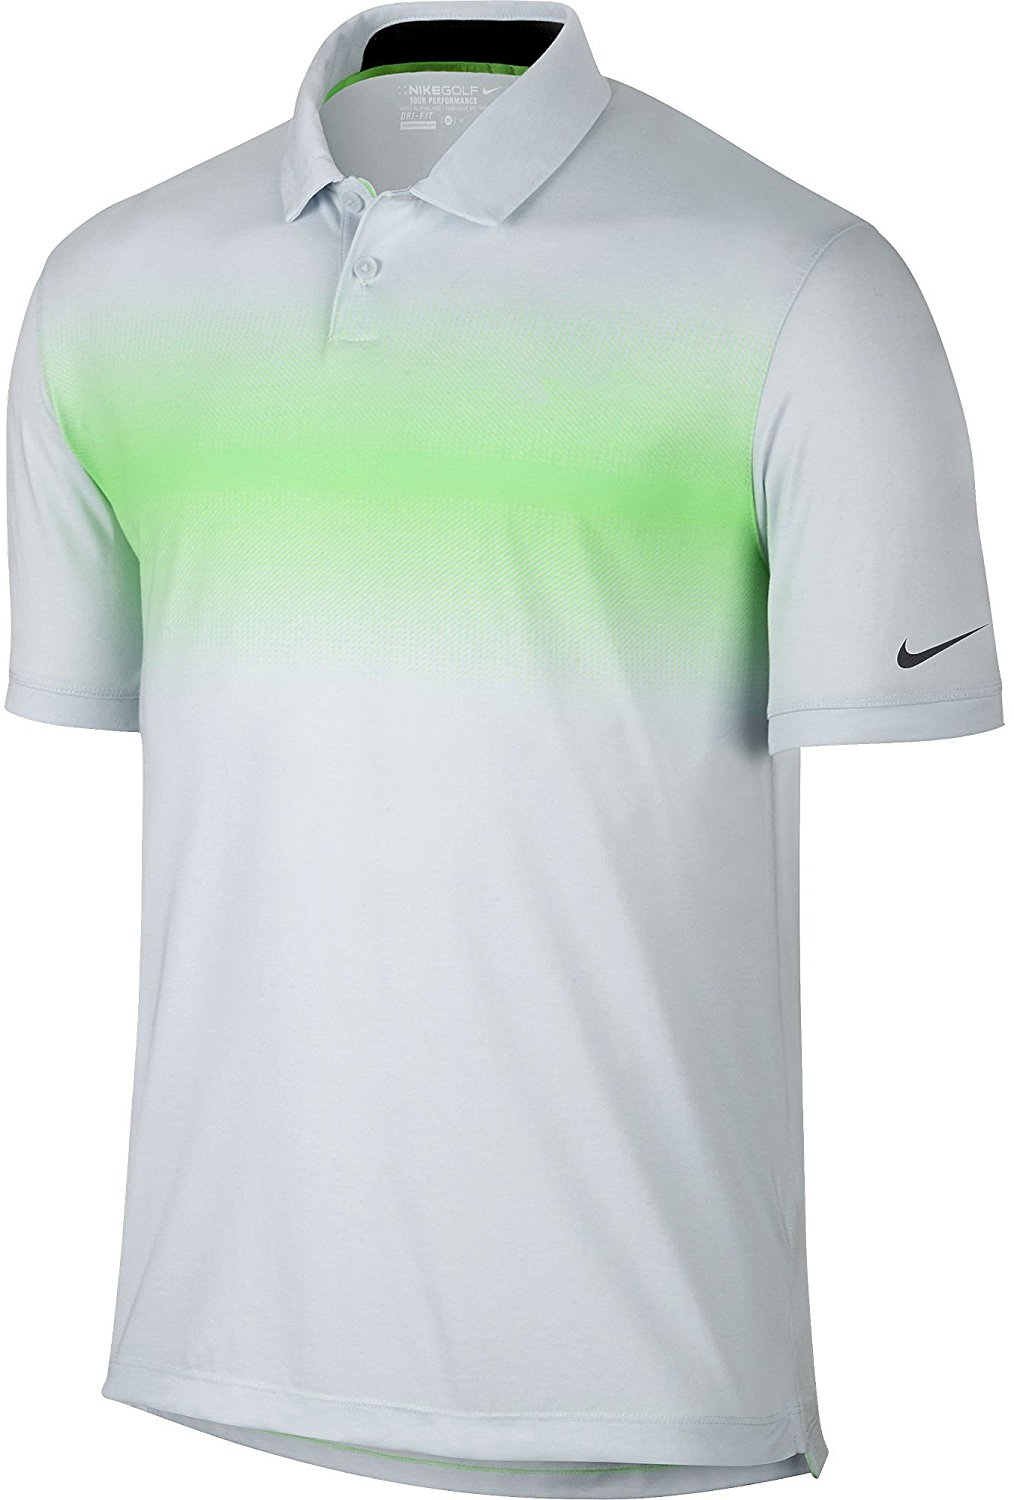 100520d3a069 Nike Golf Tour Performance Dri Fit Shirts – EDGE Engineering and ...